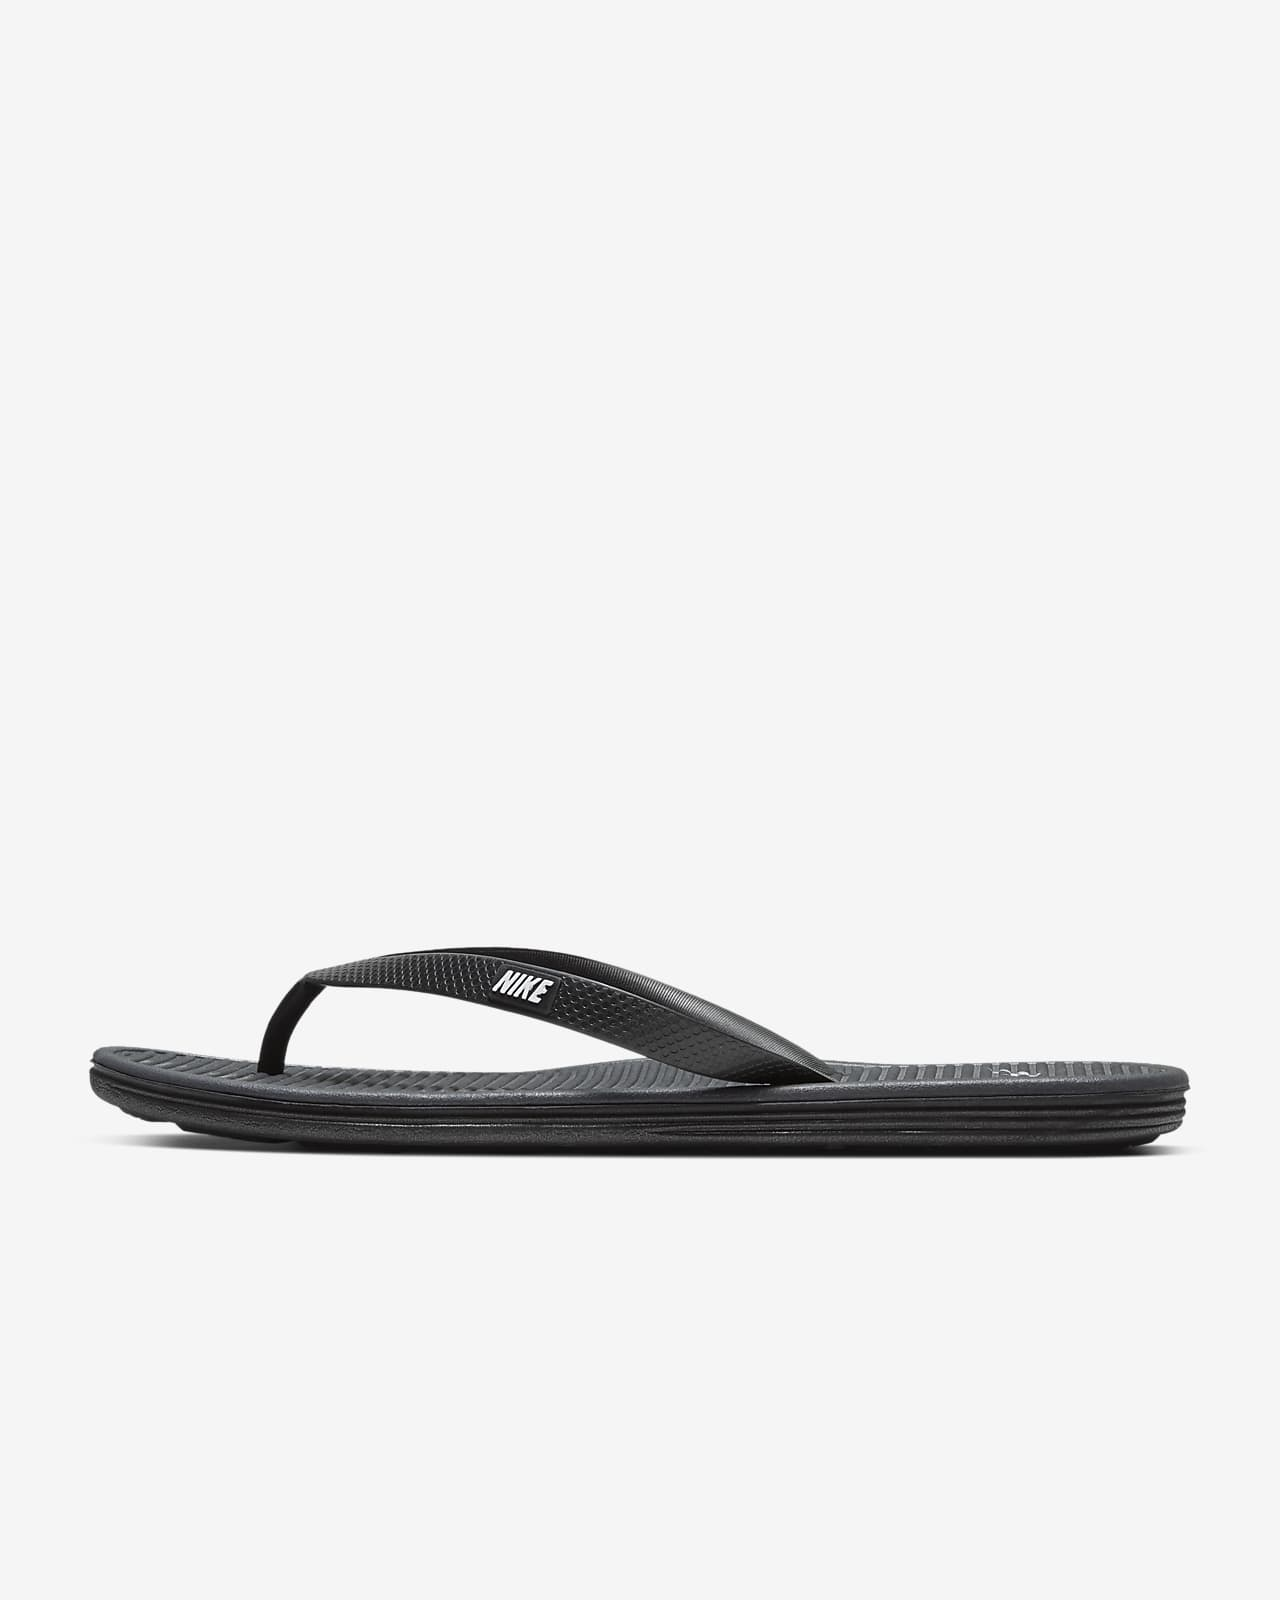 Nike Solarsoft 2 Men's Flip-Flop